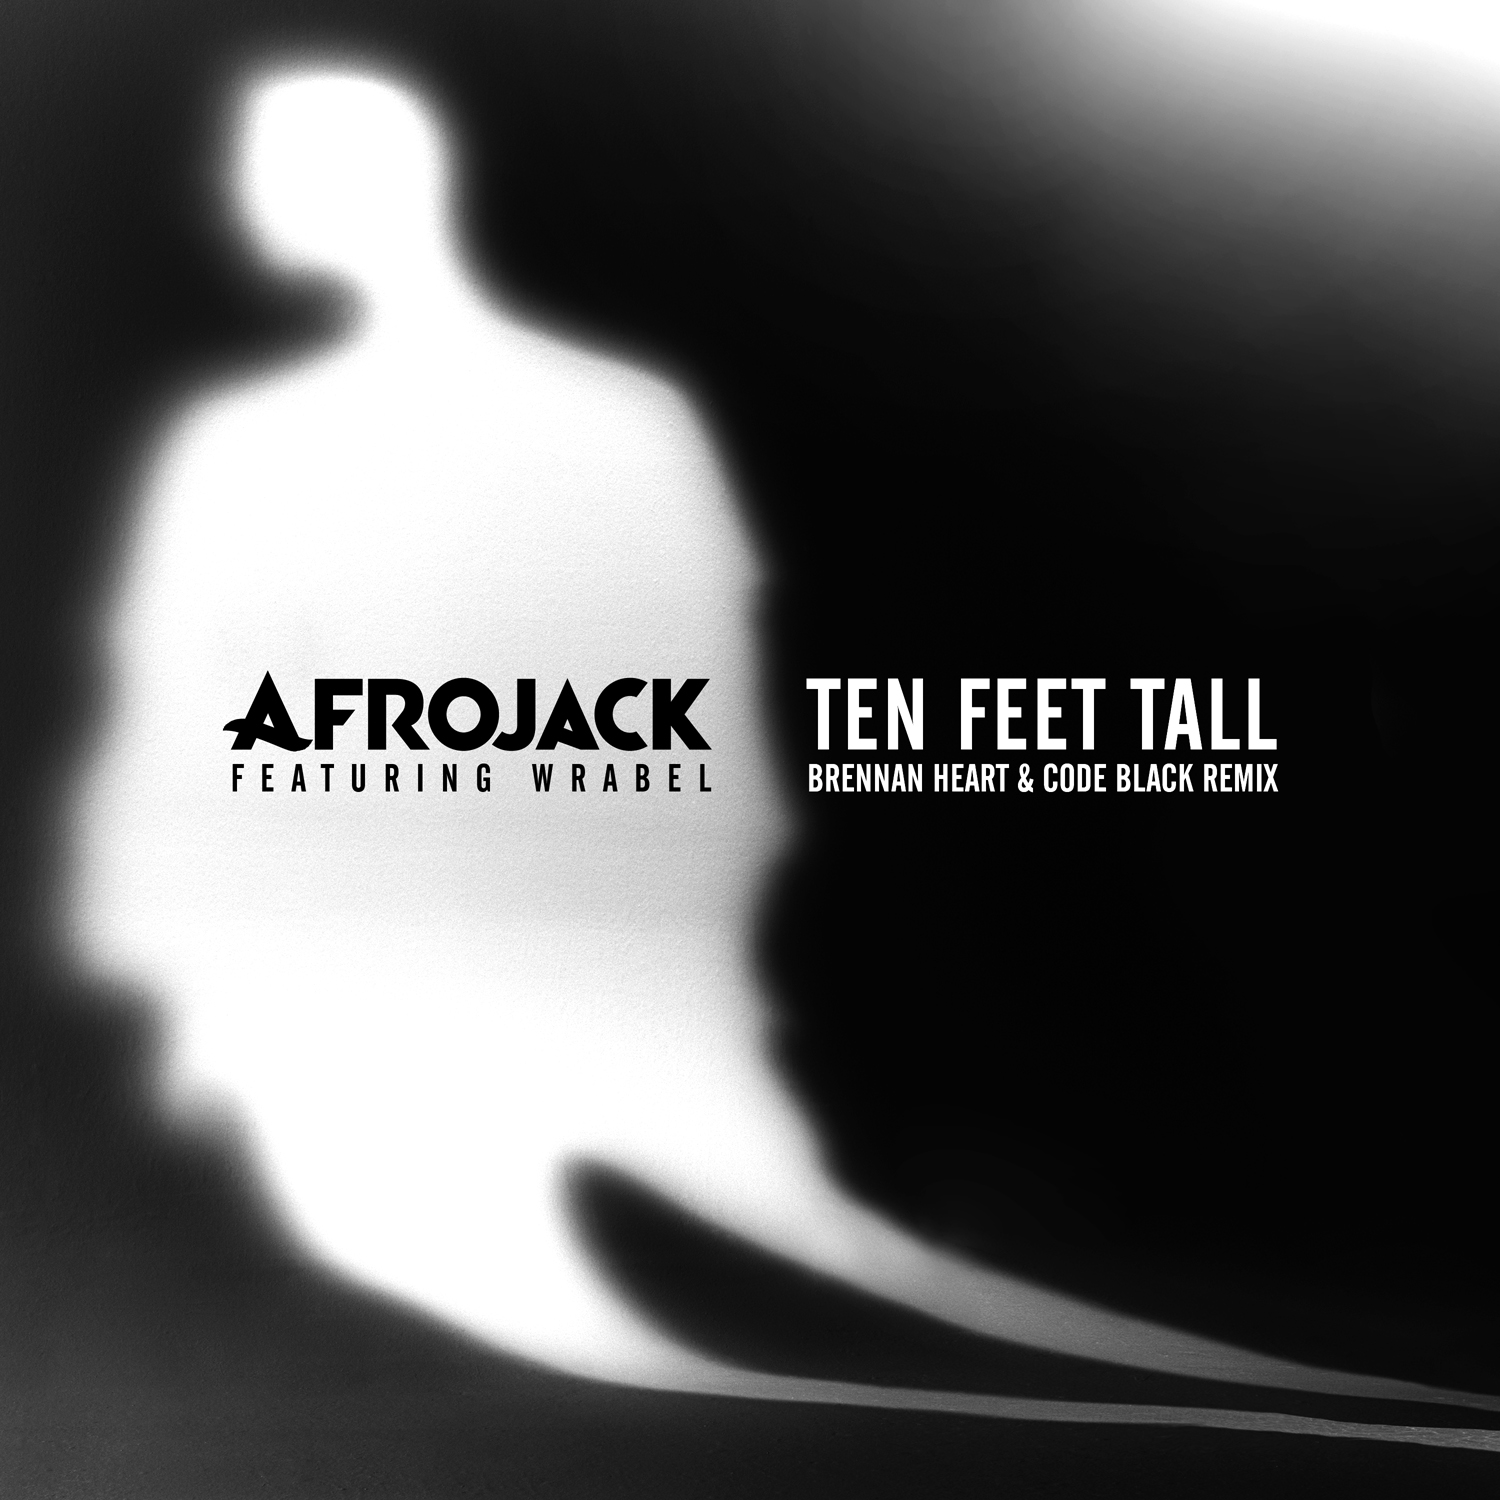 Ten Feet Tall (Brennan Heart & Code Black Remix)